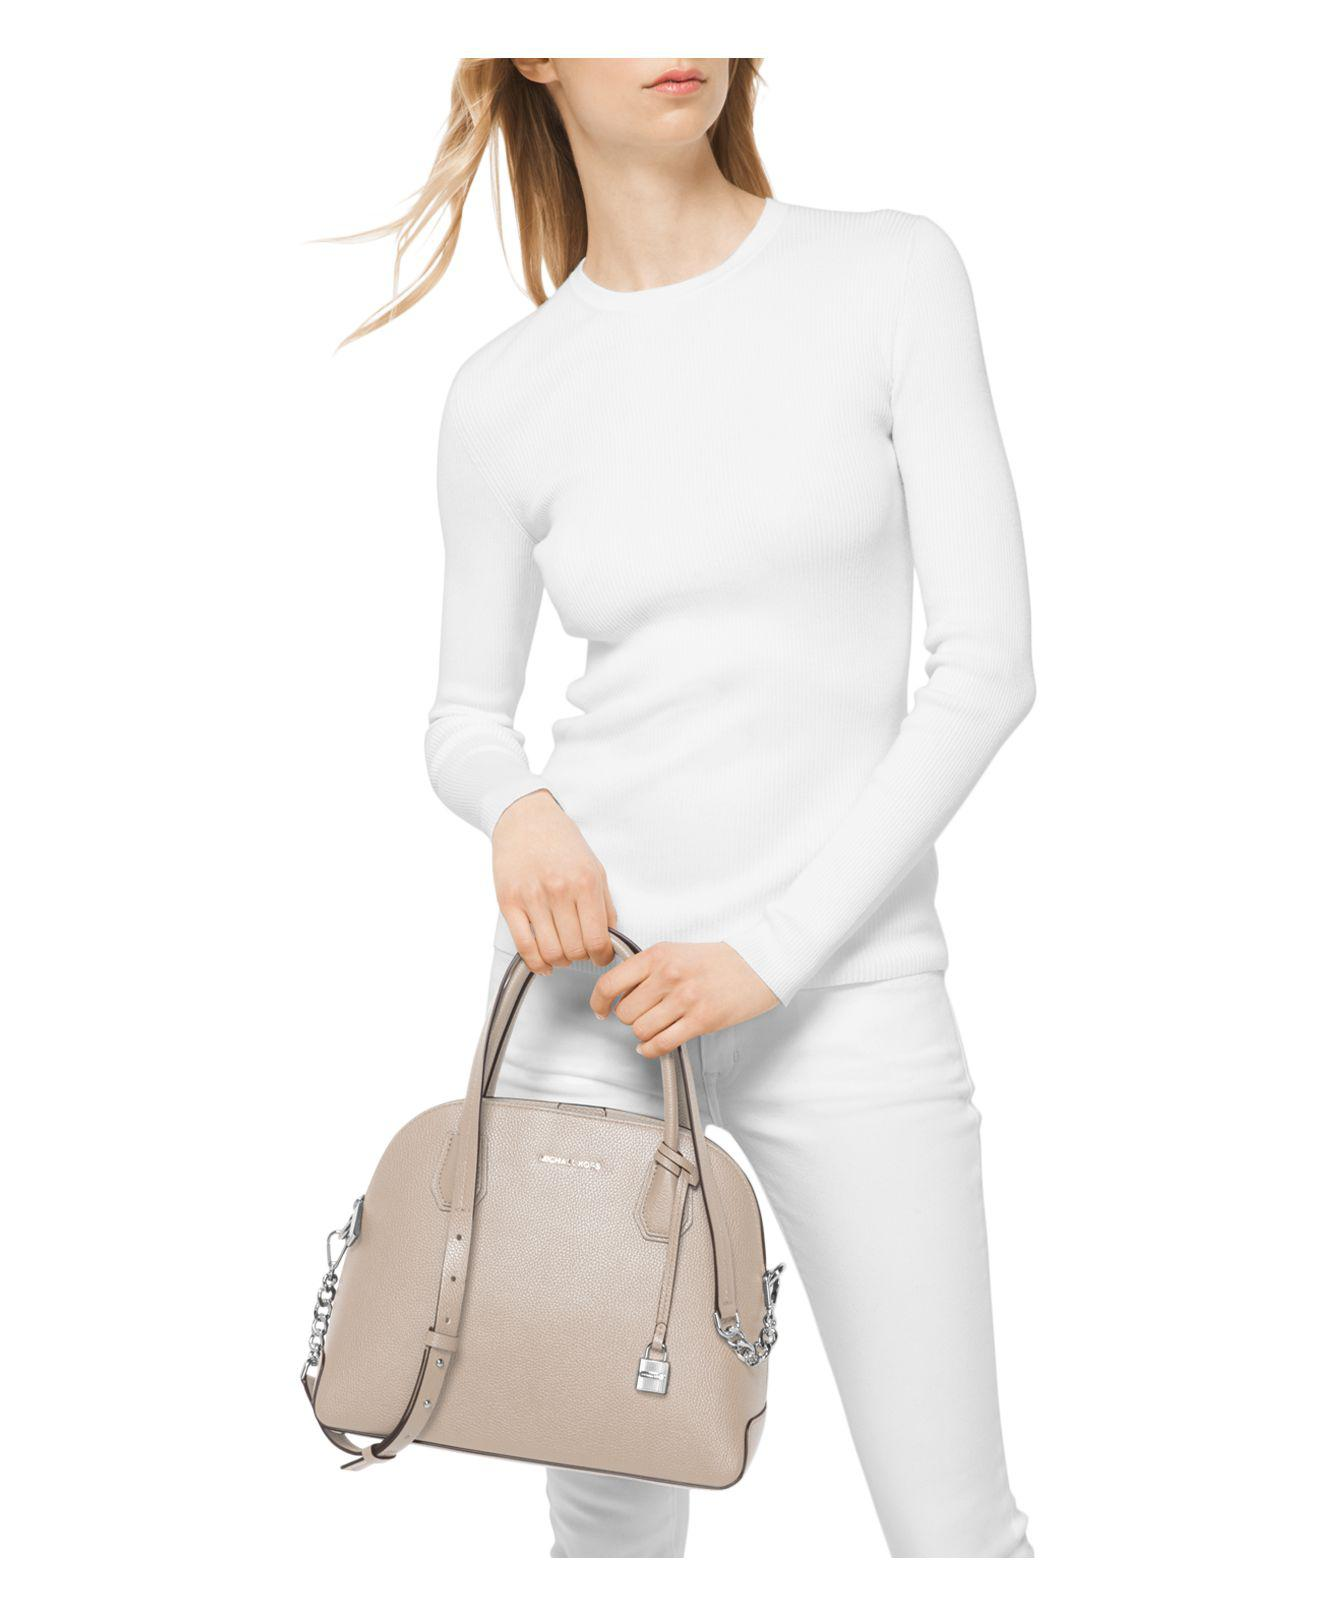 517586a9402a MICHAEL Michael Kors Studio Mercer Dome Large Pebbled Leather ...